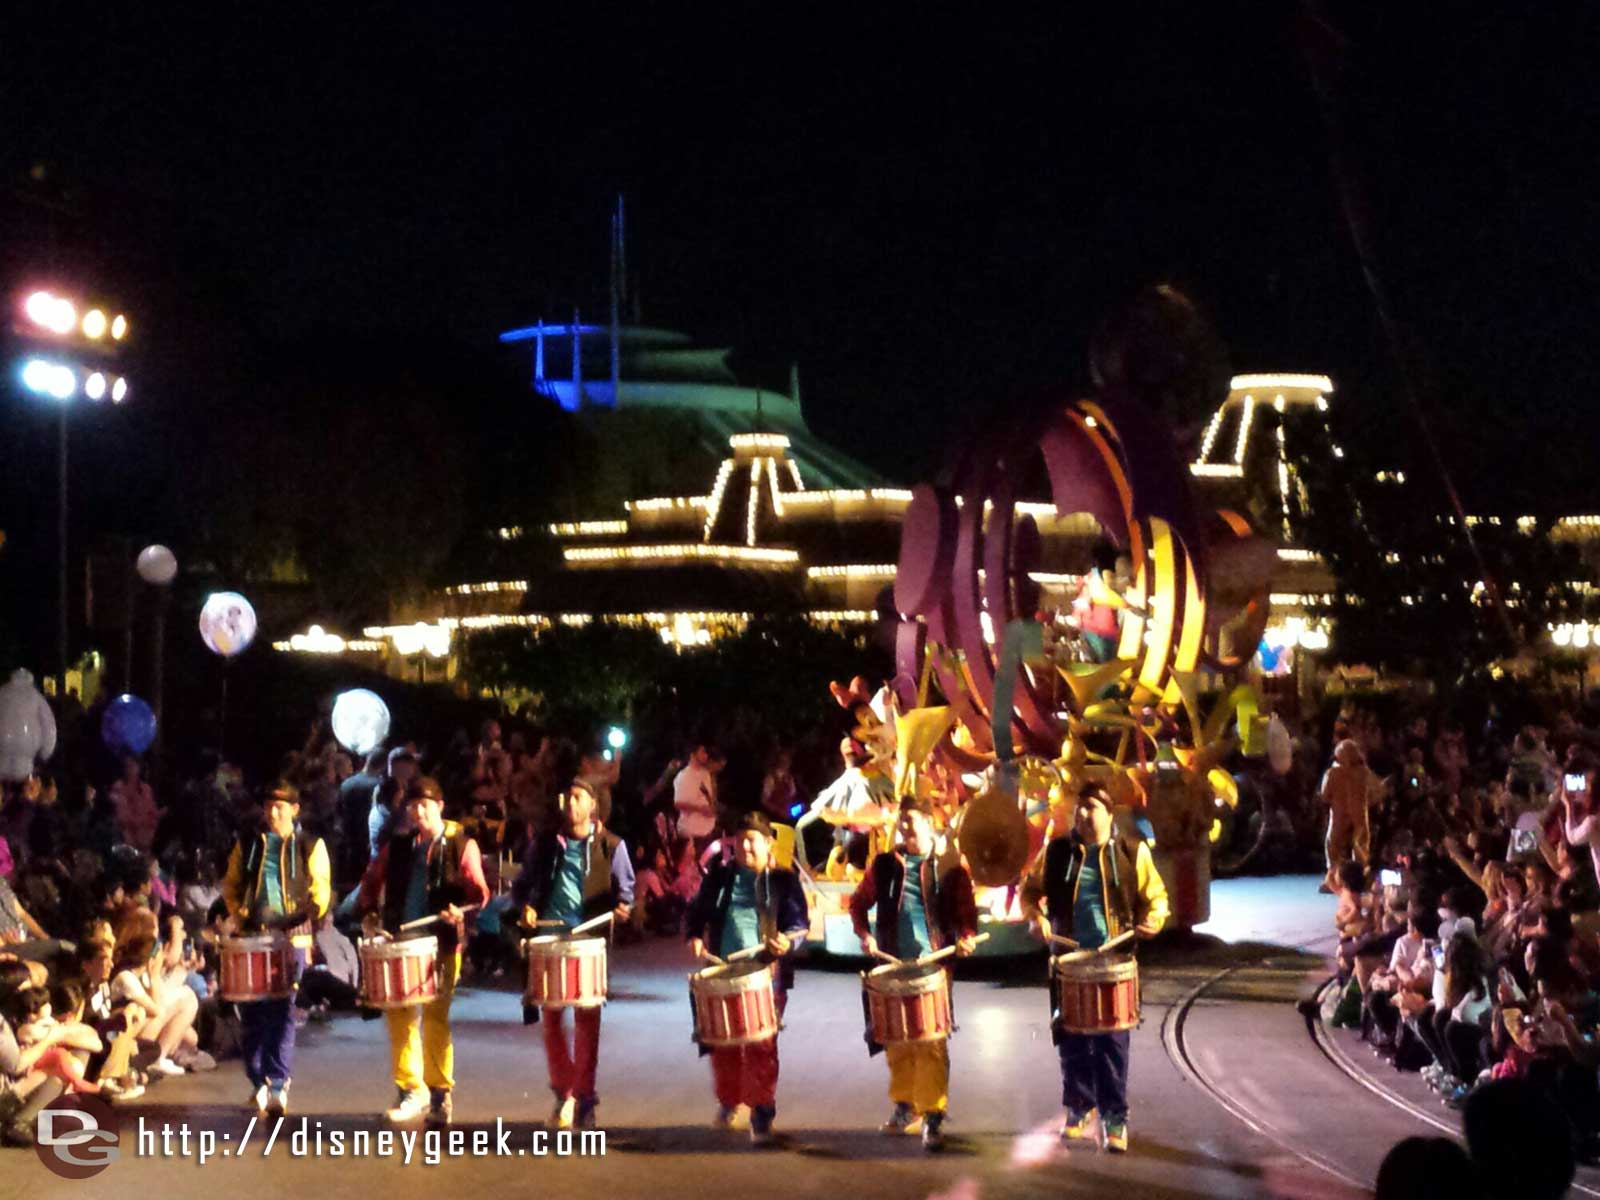 Mickey's Soundsational Parade arriving in the hub #Disneyland